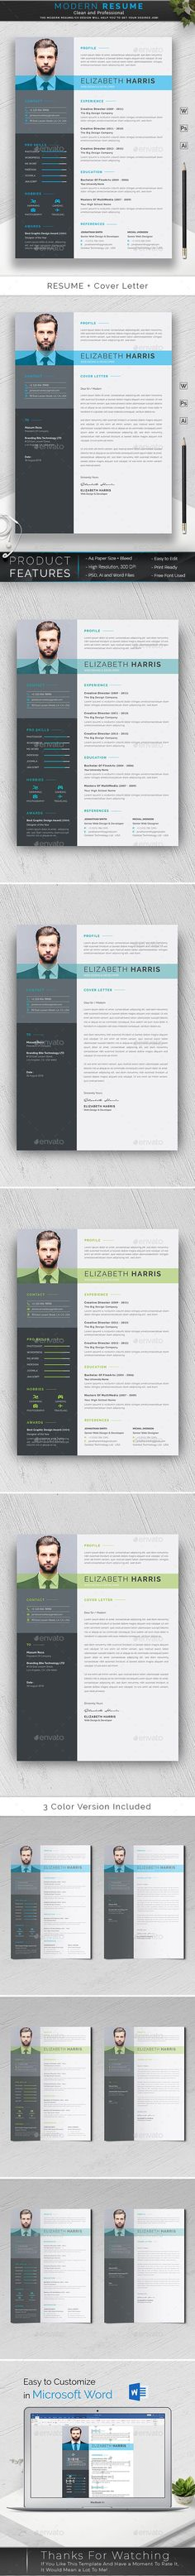 Resume Professional, Modern, Clean and Minimal Resume / CV Template. Elegant page designs are easy to use and customize, so you can quickly tailor-make your resume for any opportunity and it will help you to get your desired job. Letterhead Template, Best Resume Template, Cv Template, Mockup Templates, Graphic Design Brochure, Change Image, Resume Cv, Professional Resume, Page Design